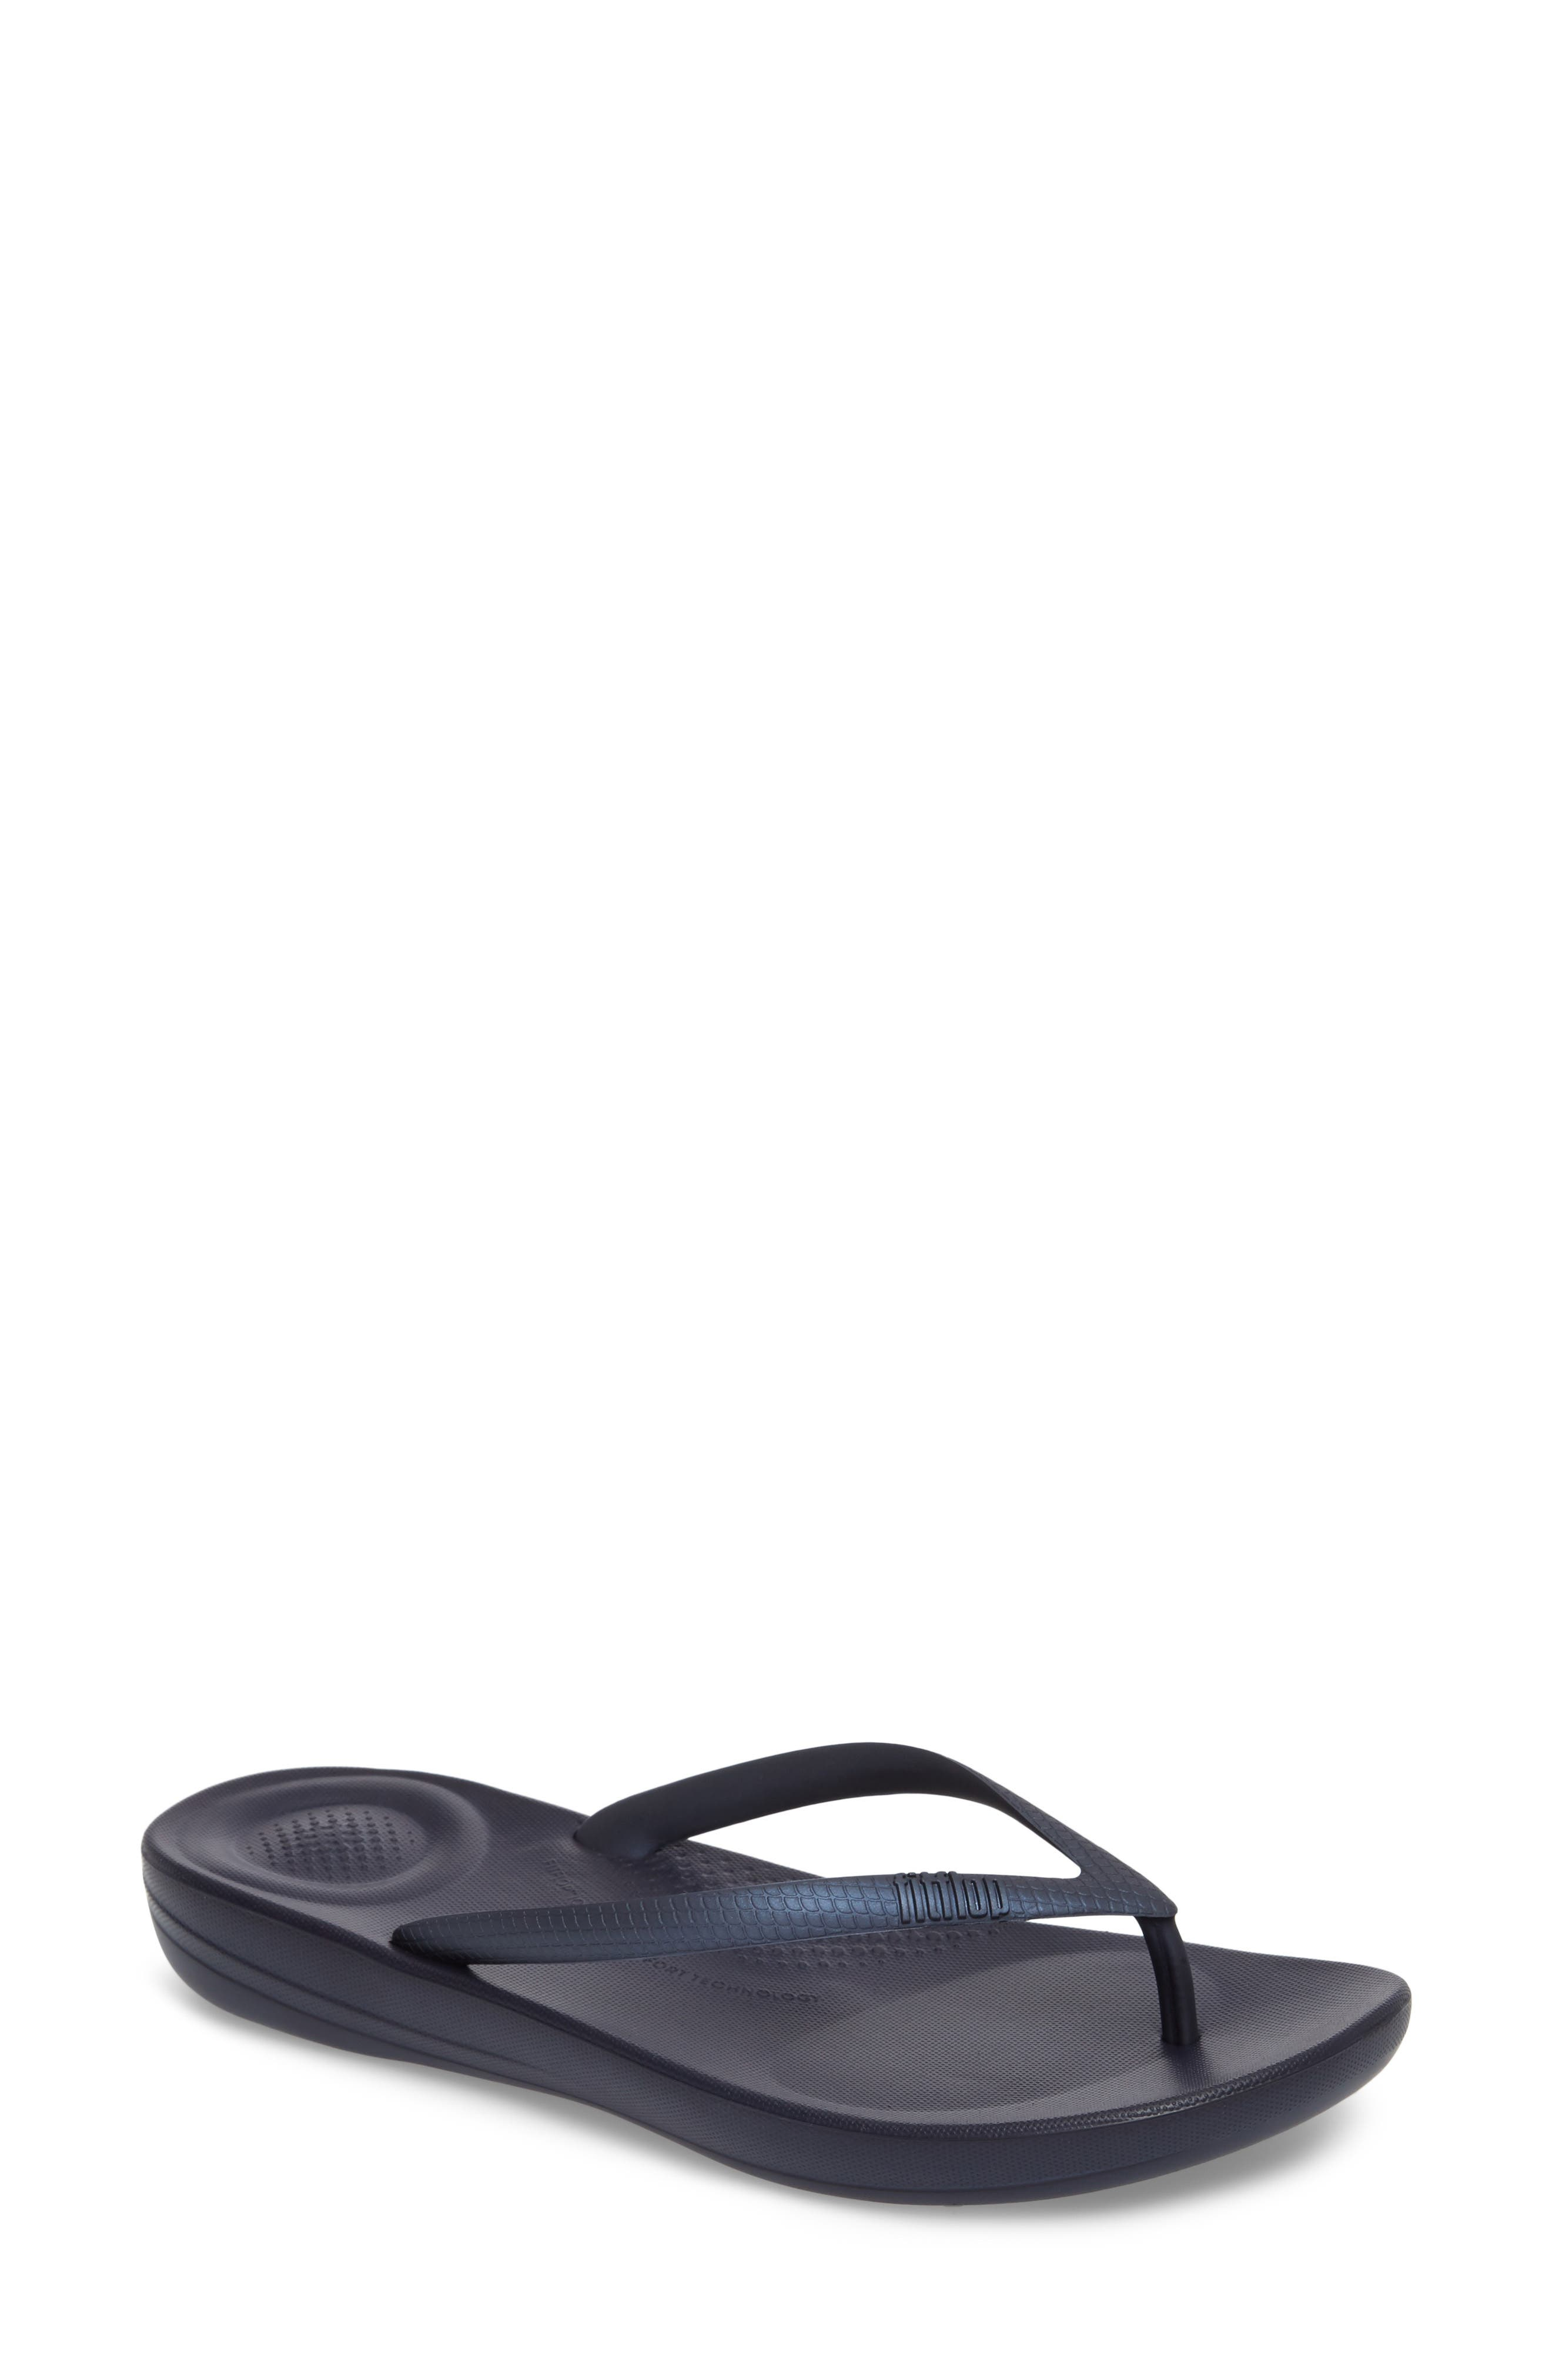 Main Image - FitFlop iQushion Flip Flop (Women)